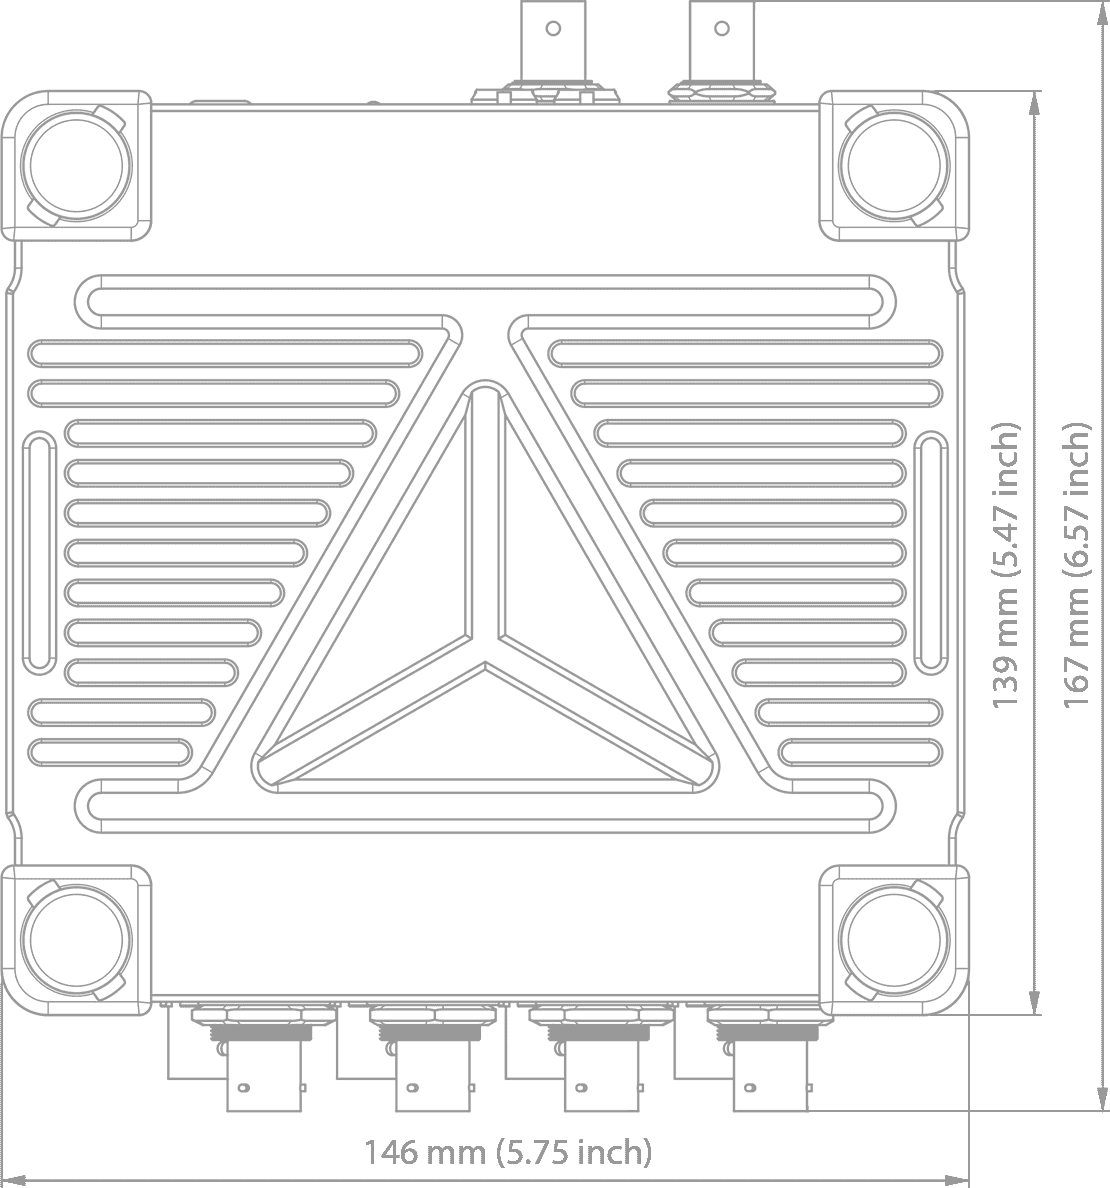 Interfacce Aerospaziali technical drawing